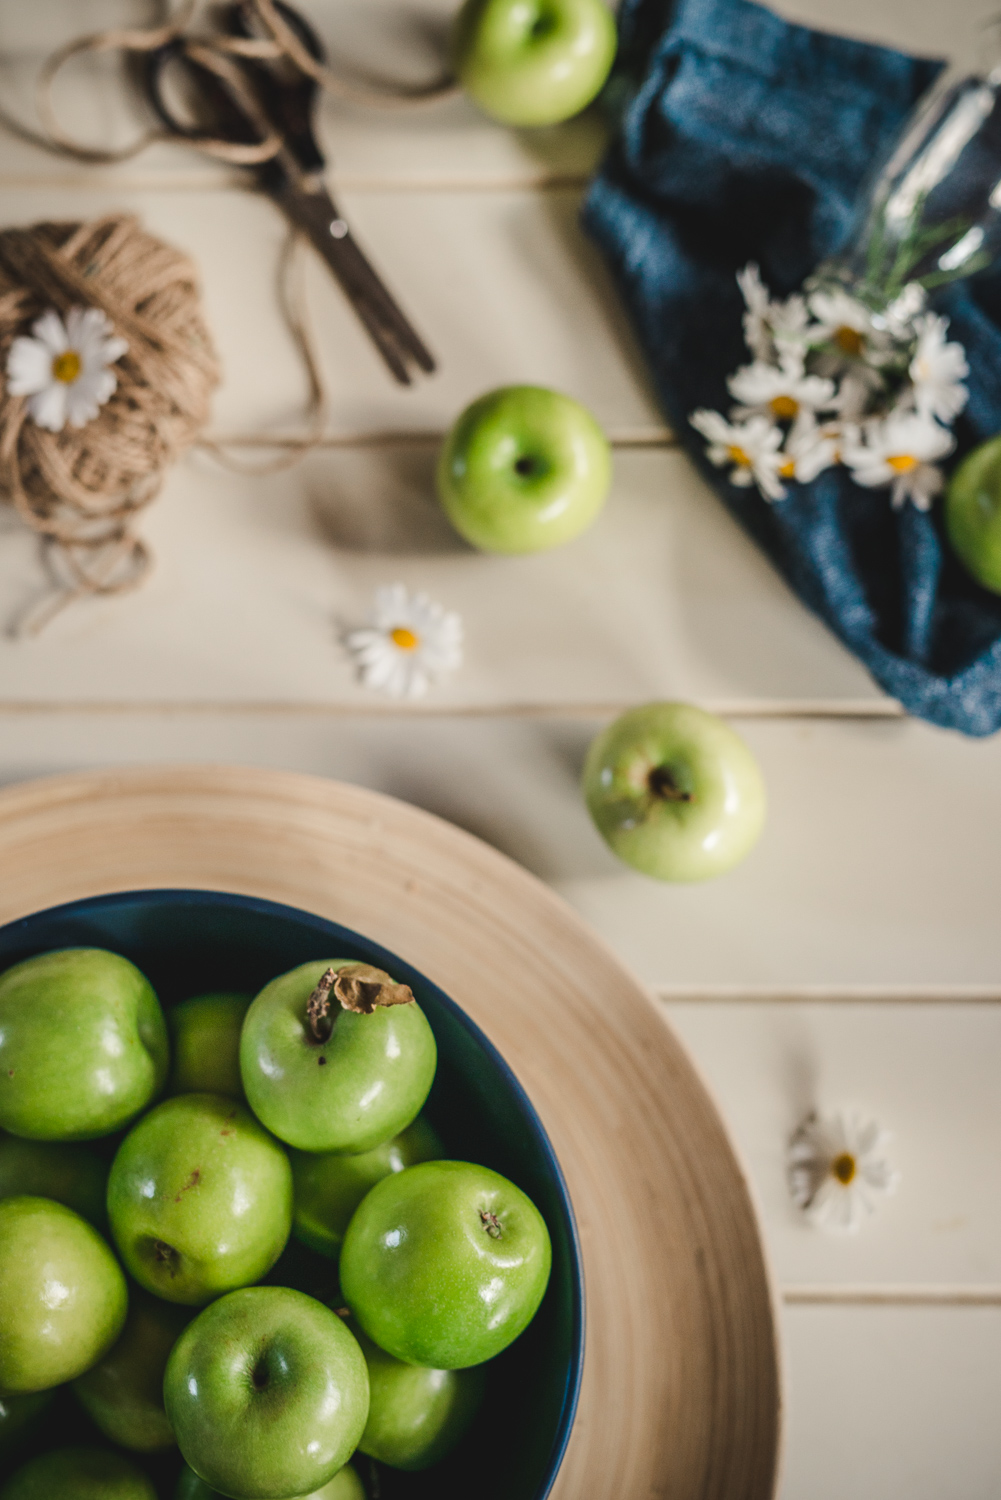 flatlay-photographer-sydney-apples-and-spring-flowers